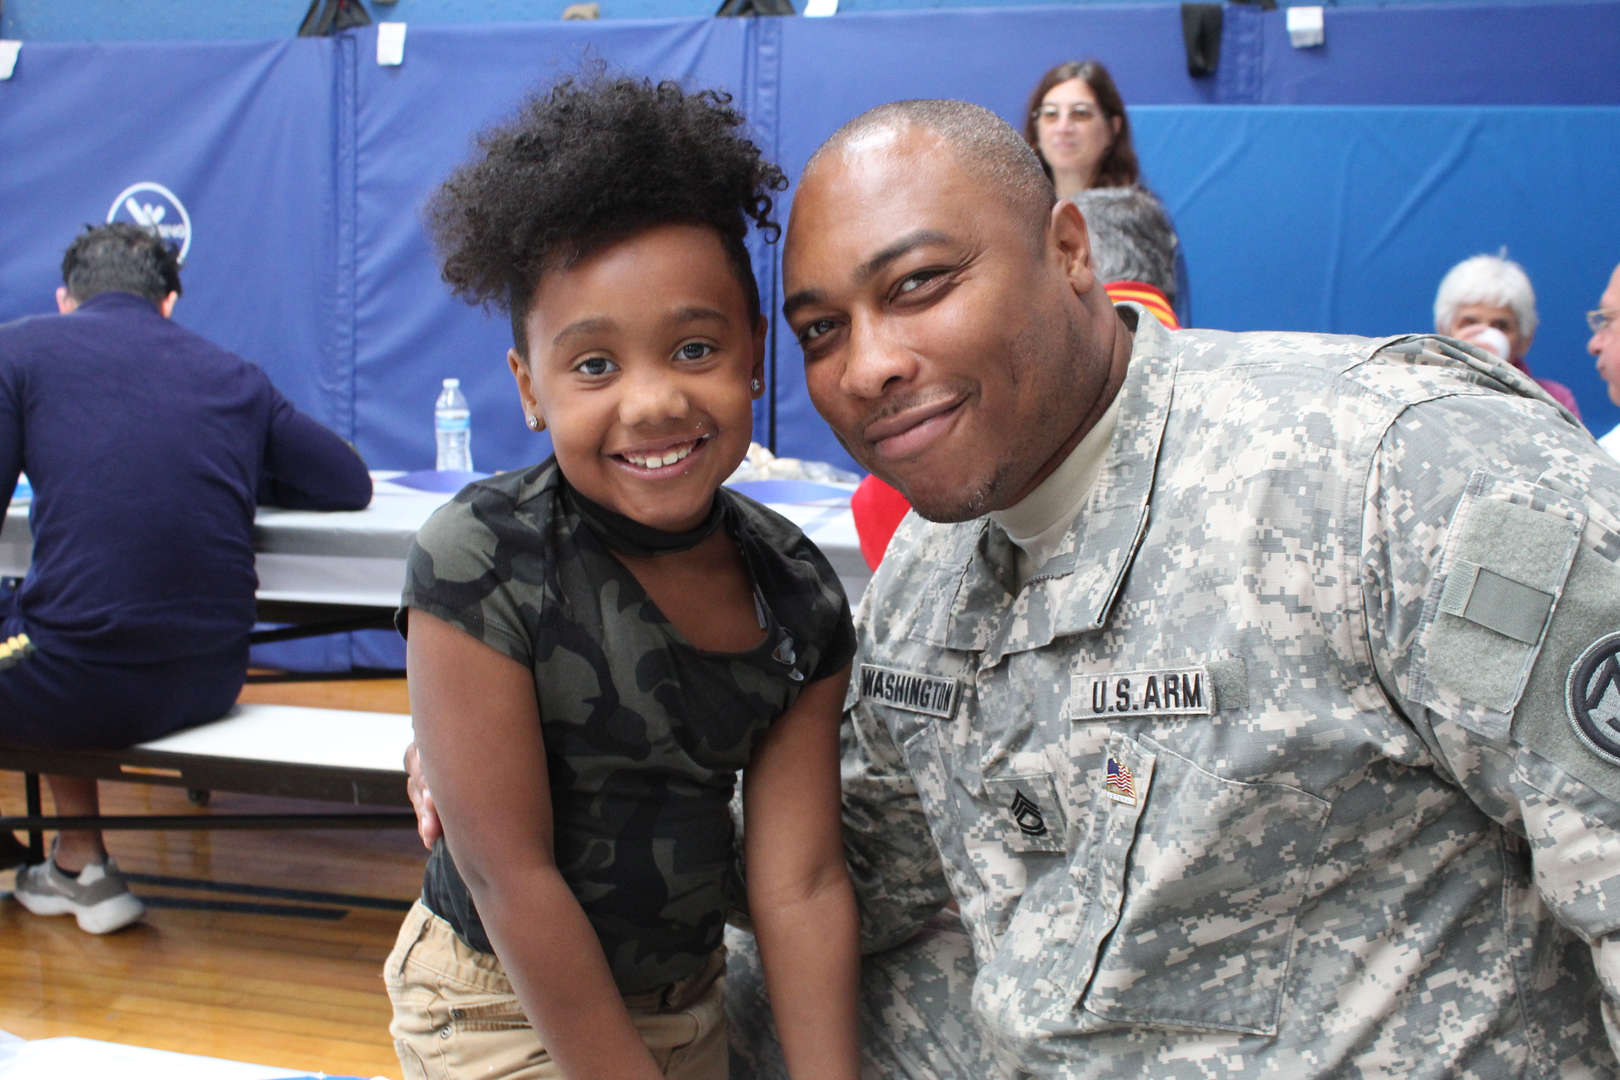 Soldier in fatigues sits next to young girl